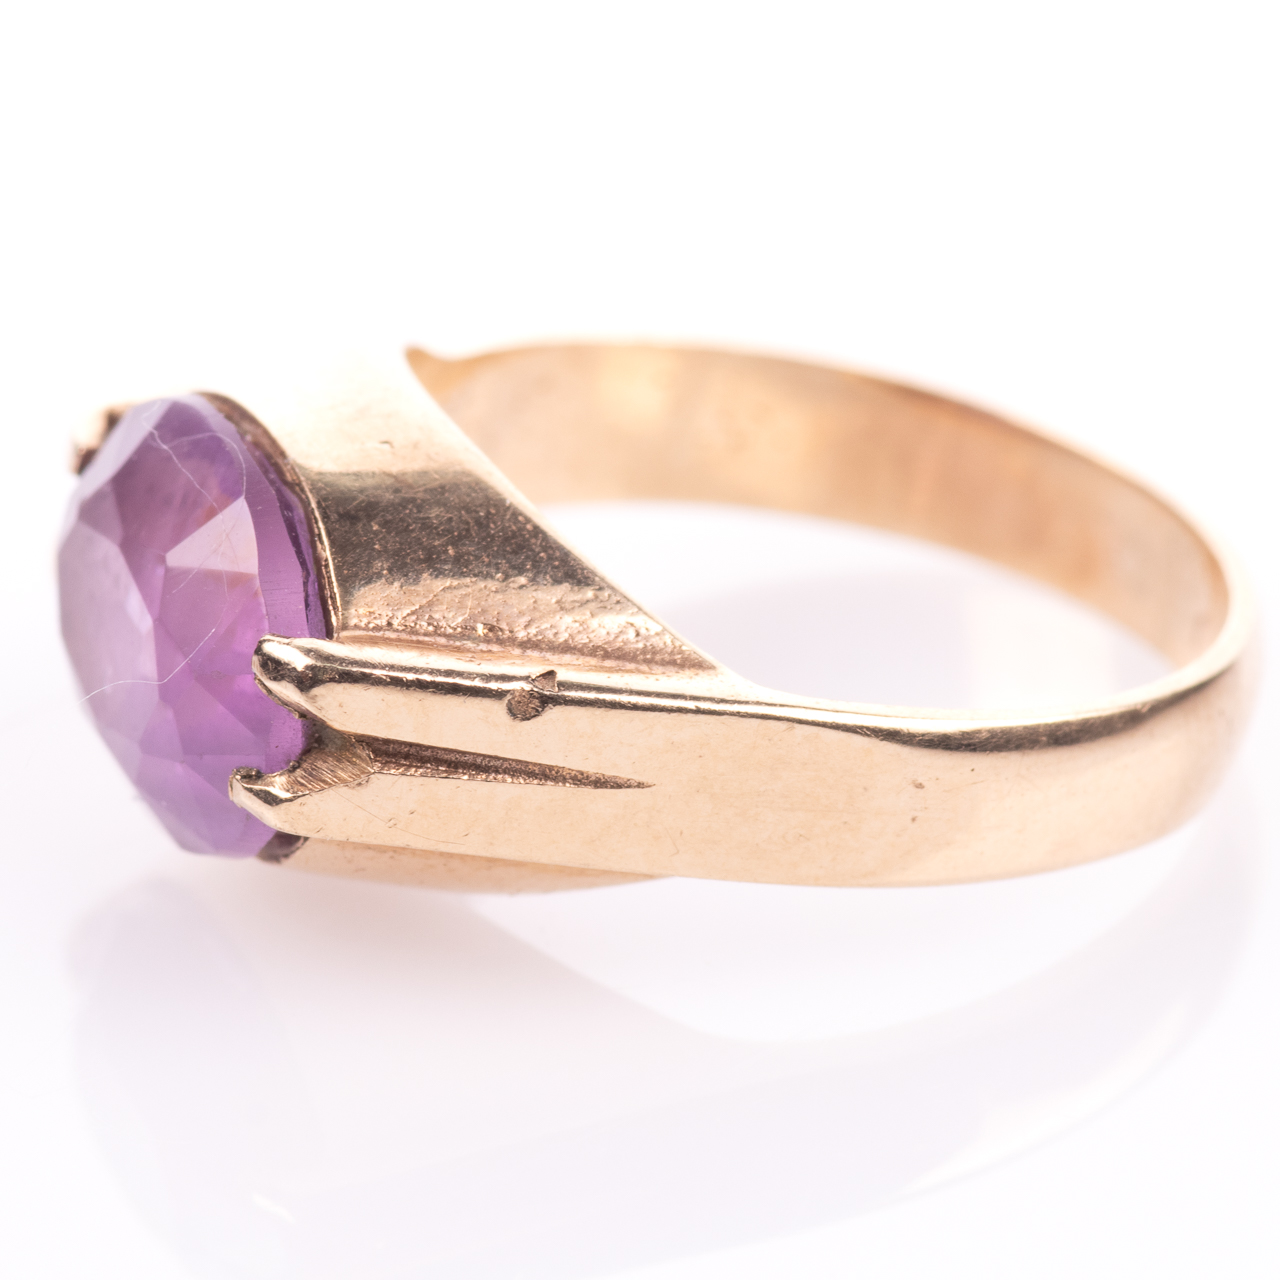 9ct Gold 3.20ct Amethyst Ring - Image 4 of 7